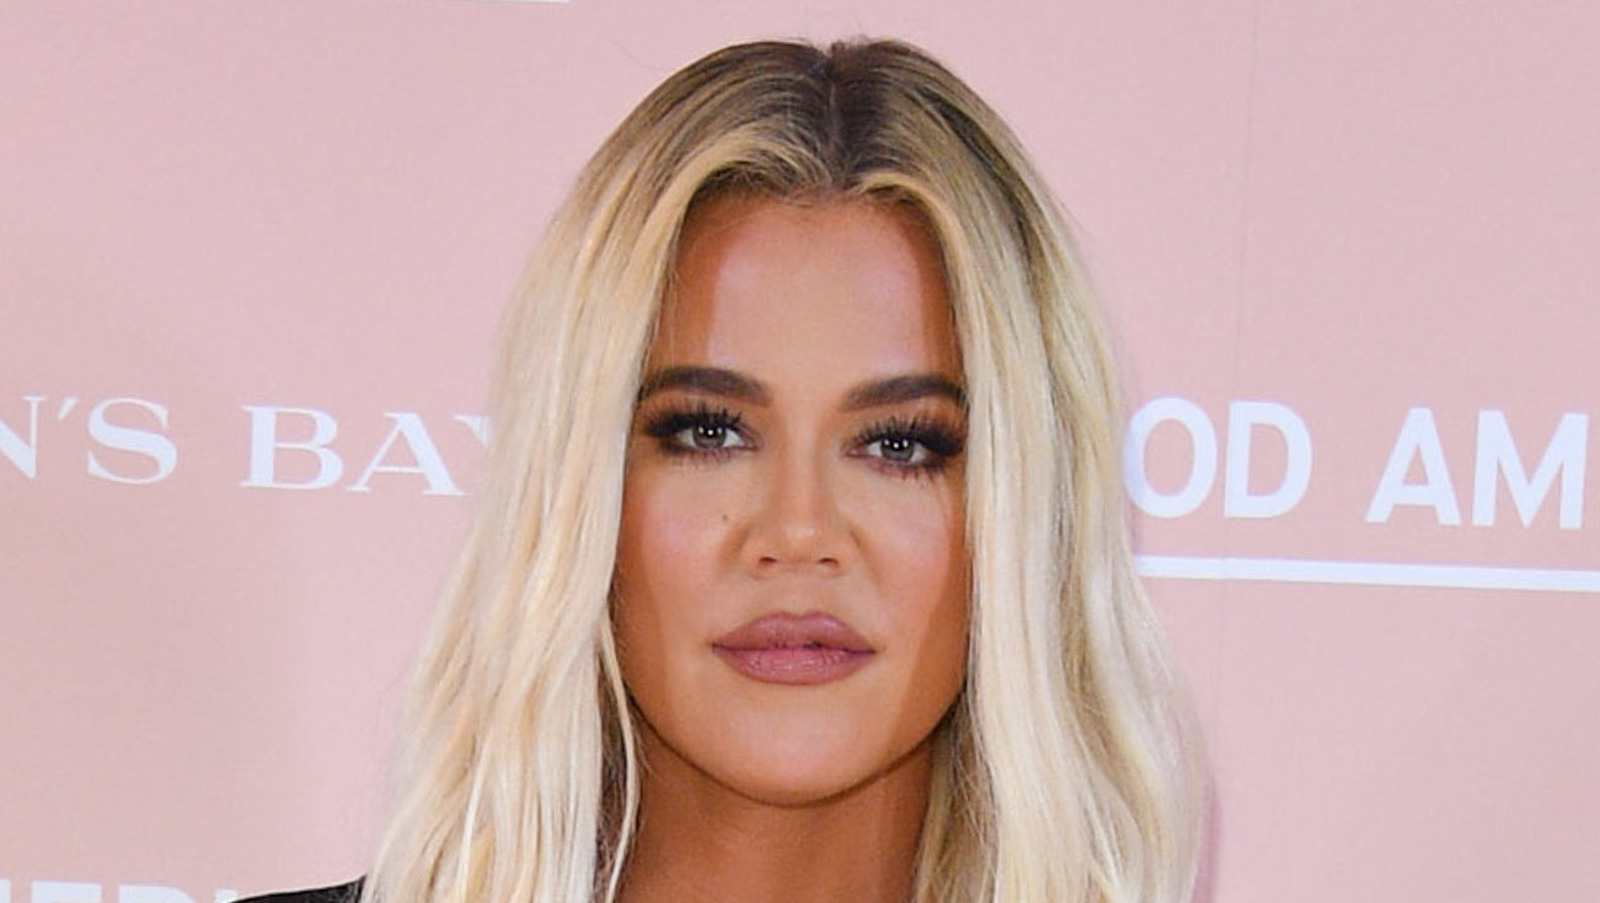 Here's Khloe Kardashian And Tristan Thompson's Biggest Priority Right Now